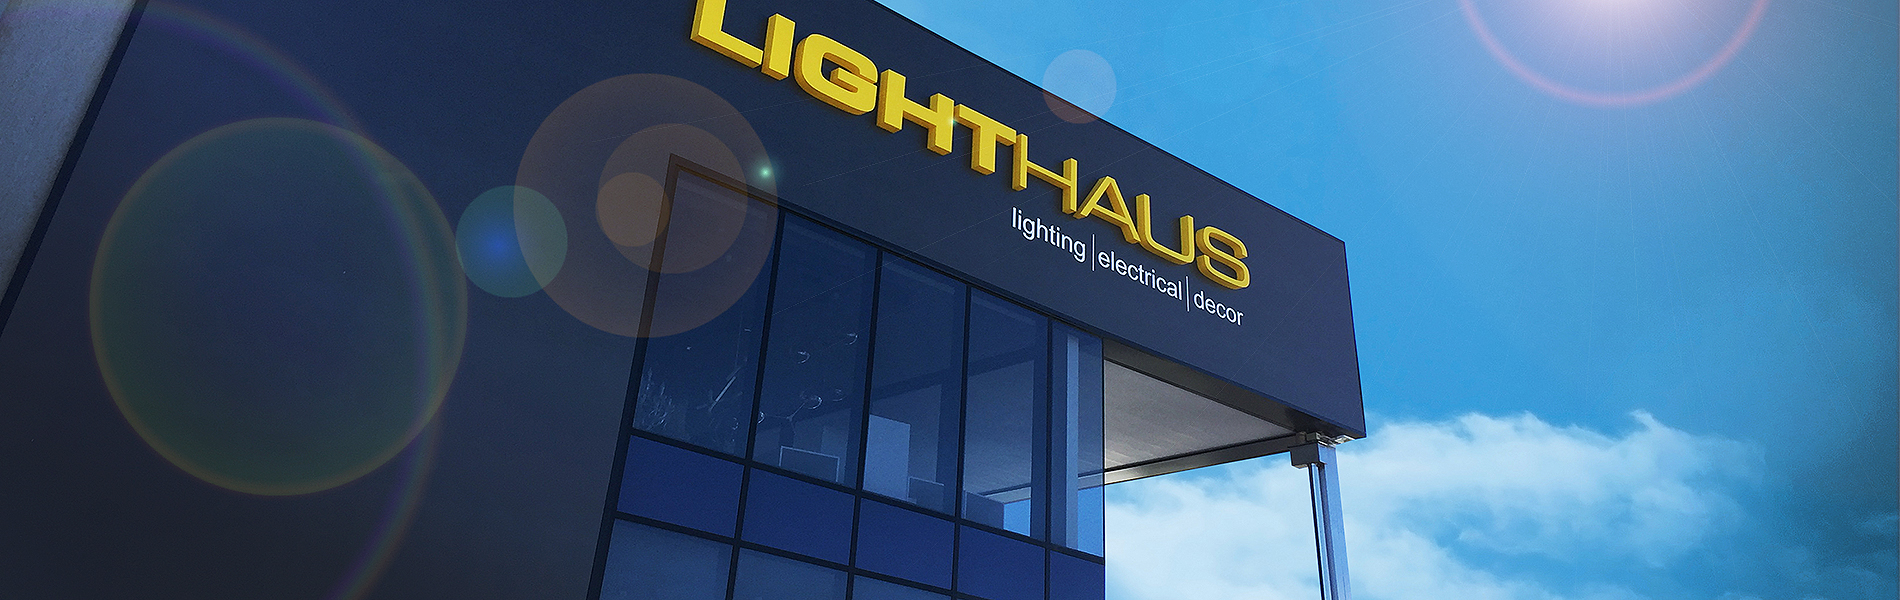 A HYBRID LIGHTING SOLUTIONS STORE